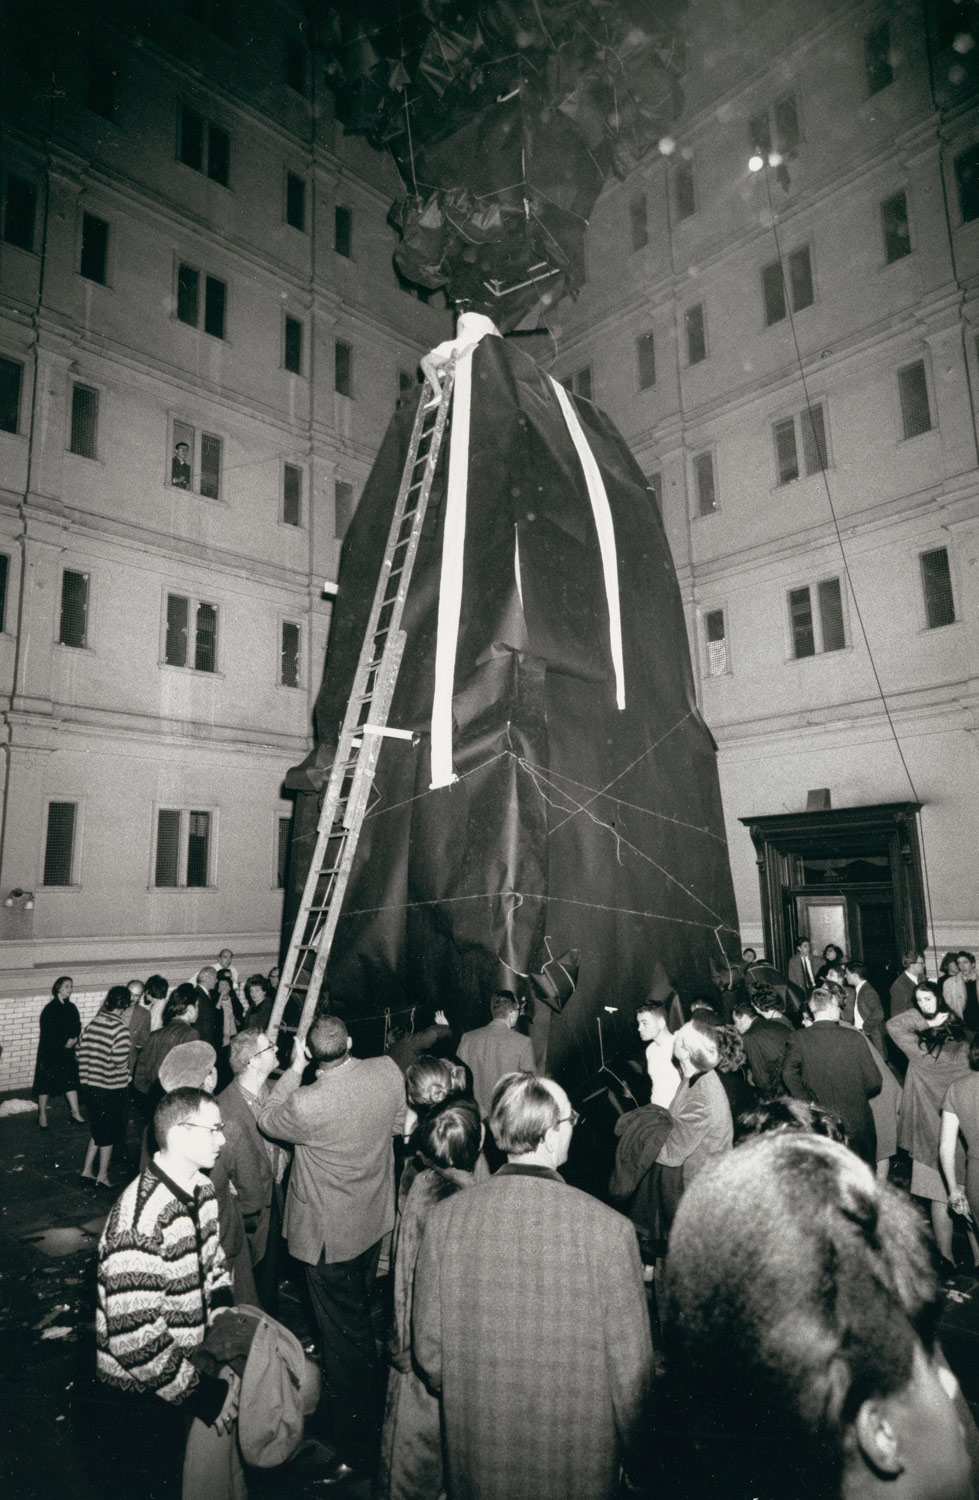 [Lette Eisenhauer Descending from Giant Mountain Construction, After Performance of The Courtyard, A Happening by Allan Kaprow, New York City]